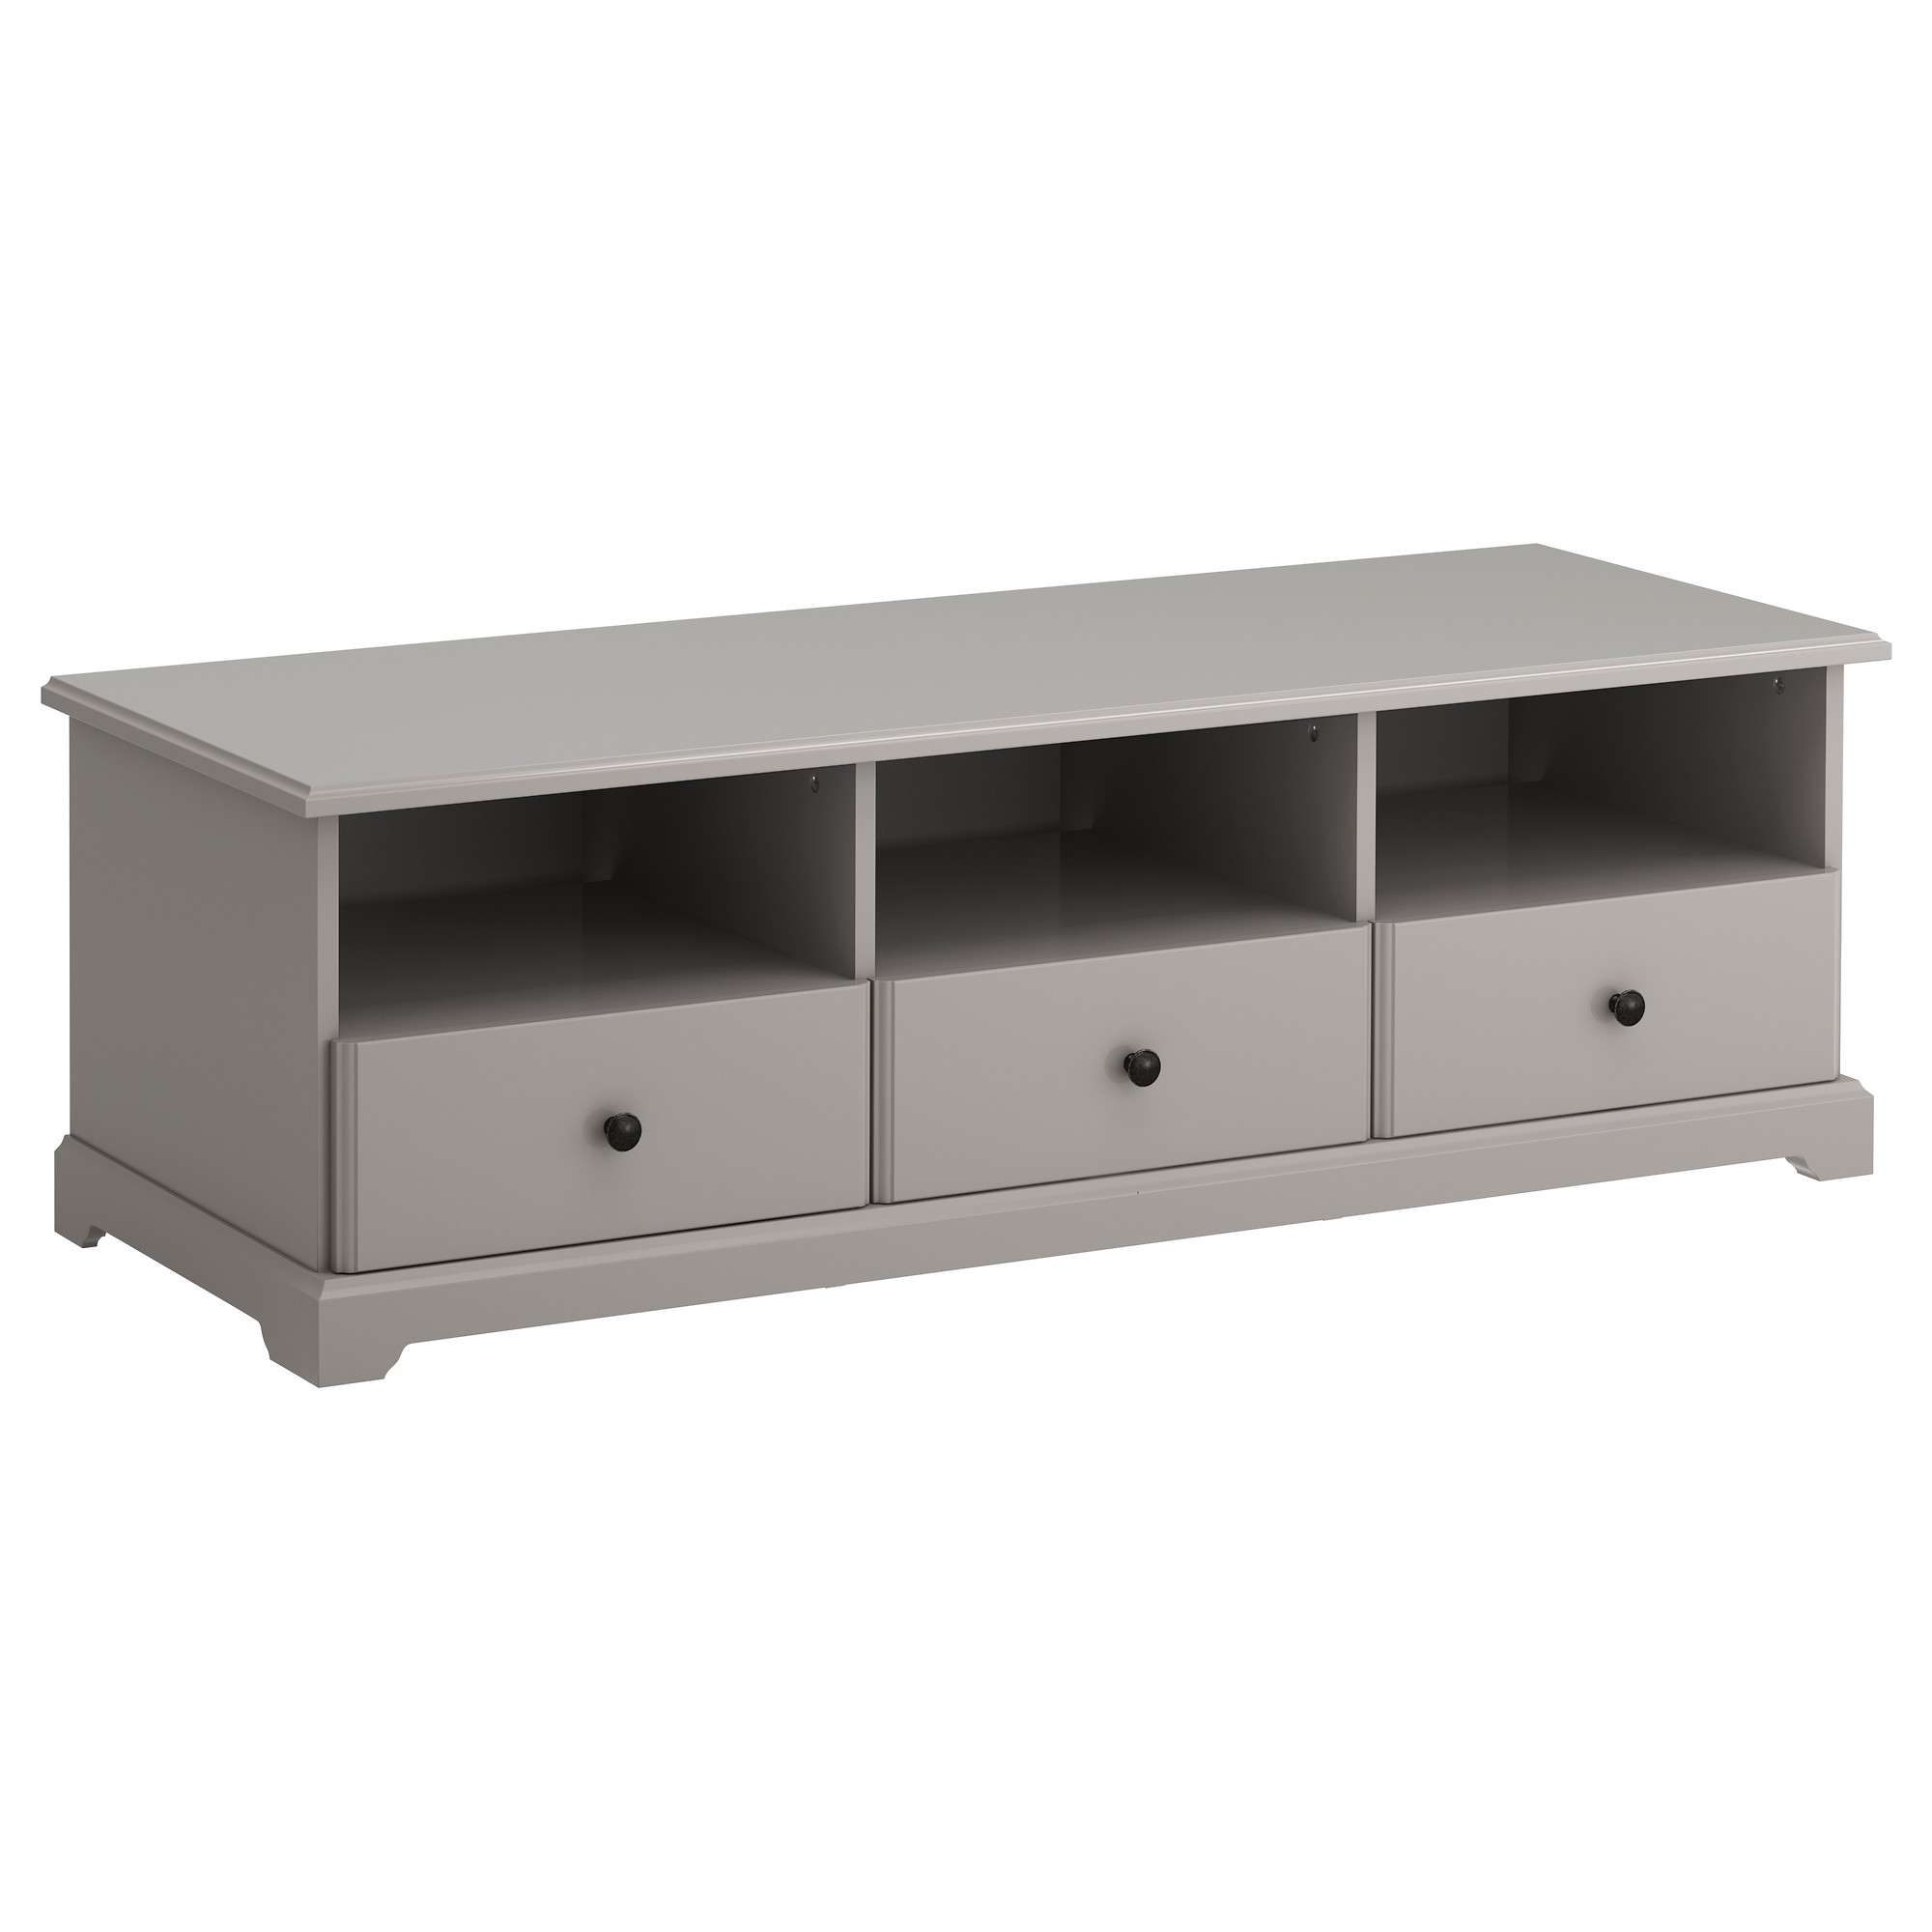 Tv Stands & Entertainment Centers – Ikea Intended For Yellow Tv Stands Ikea (View 14 of 20)